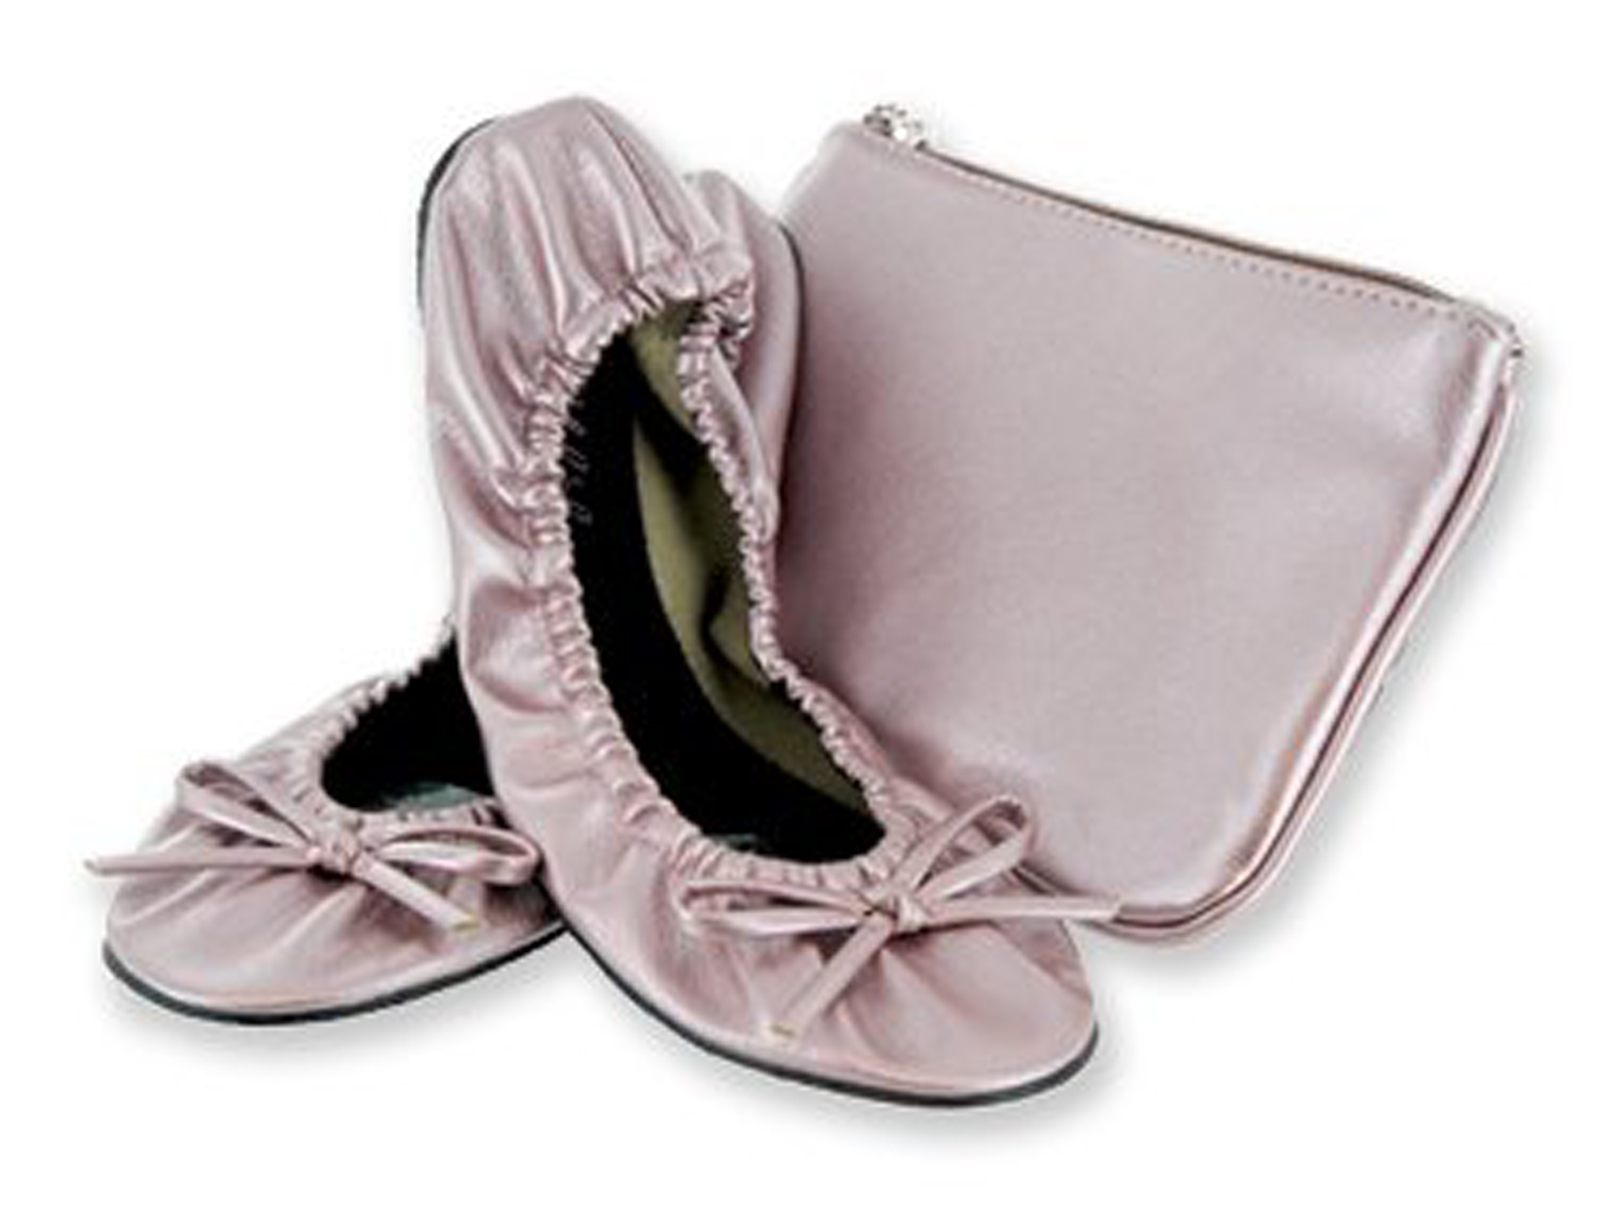 Flat Foldable Shoes 28 Images Betani Doris 3 Comfy